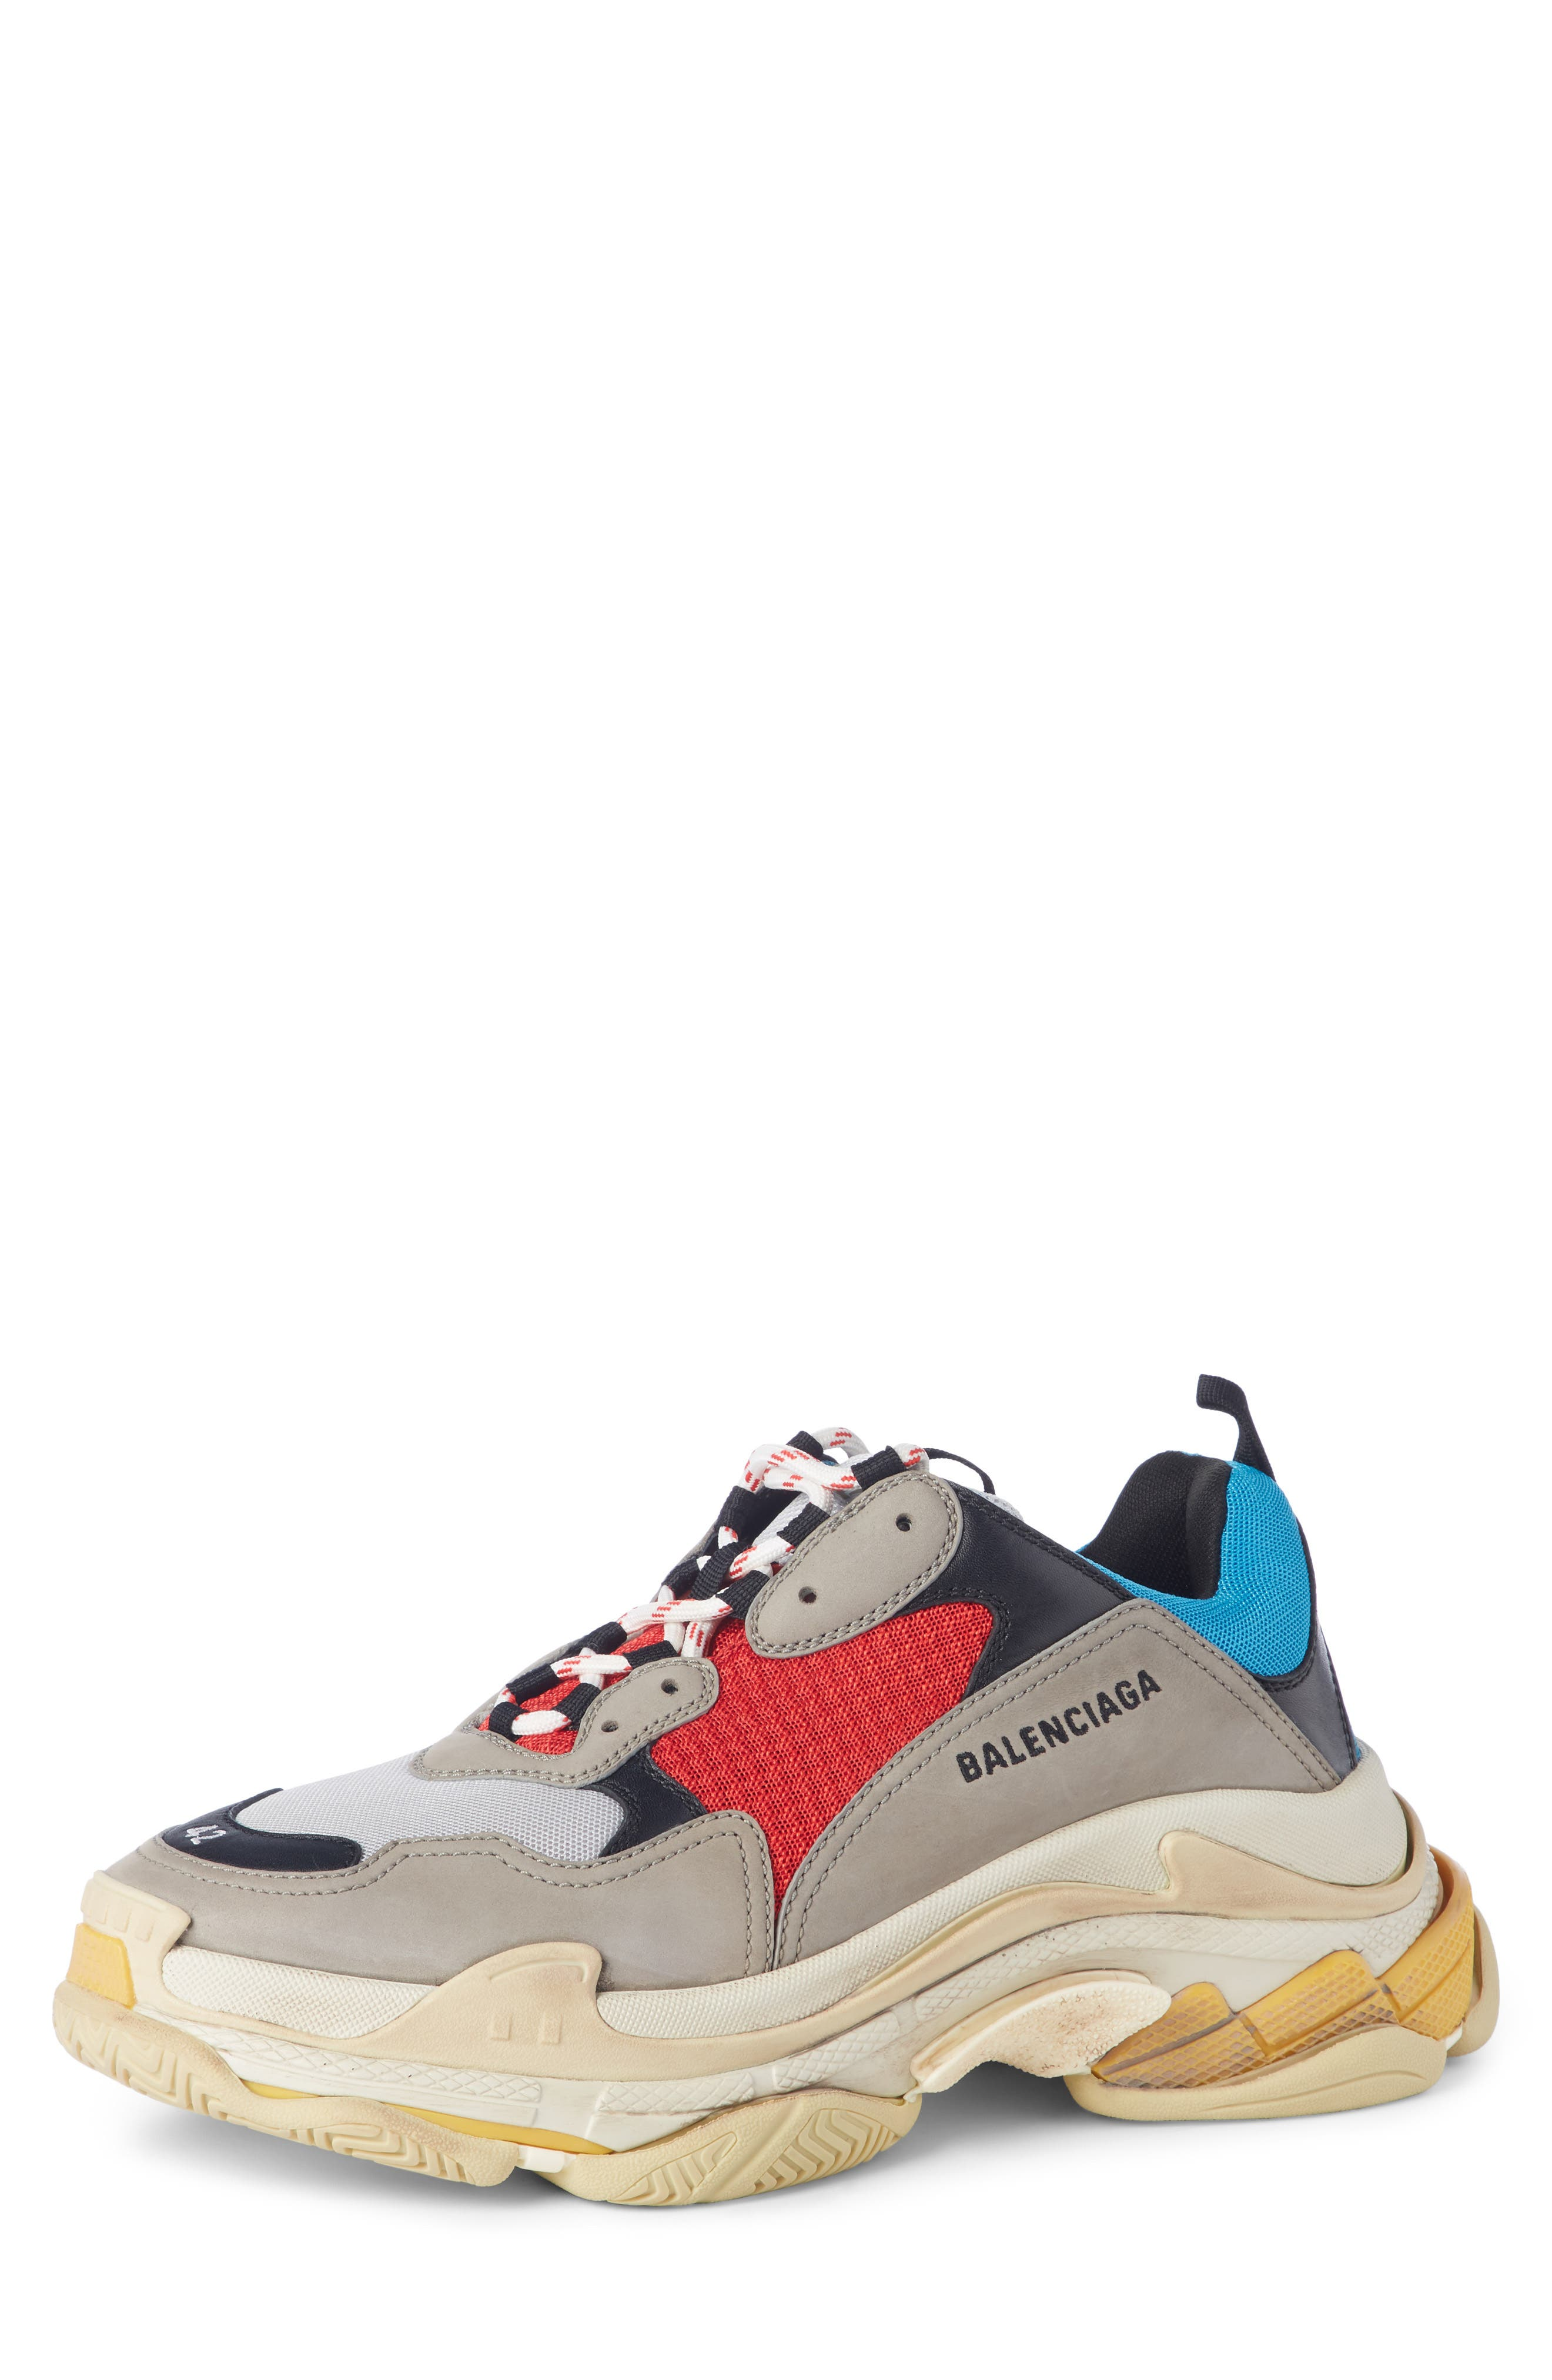 Triple S Retro Sneaker,                             Main thumbnail 1, color,                             Beige